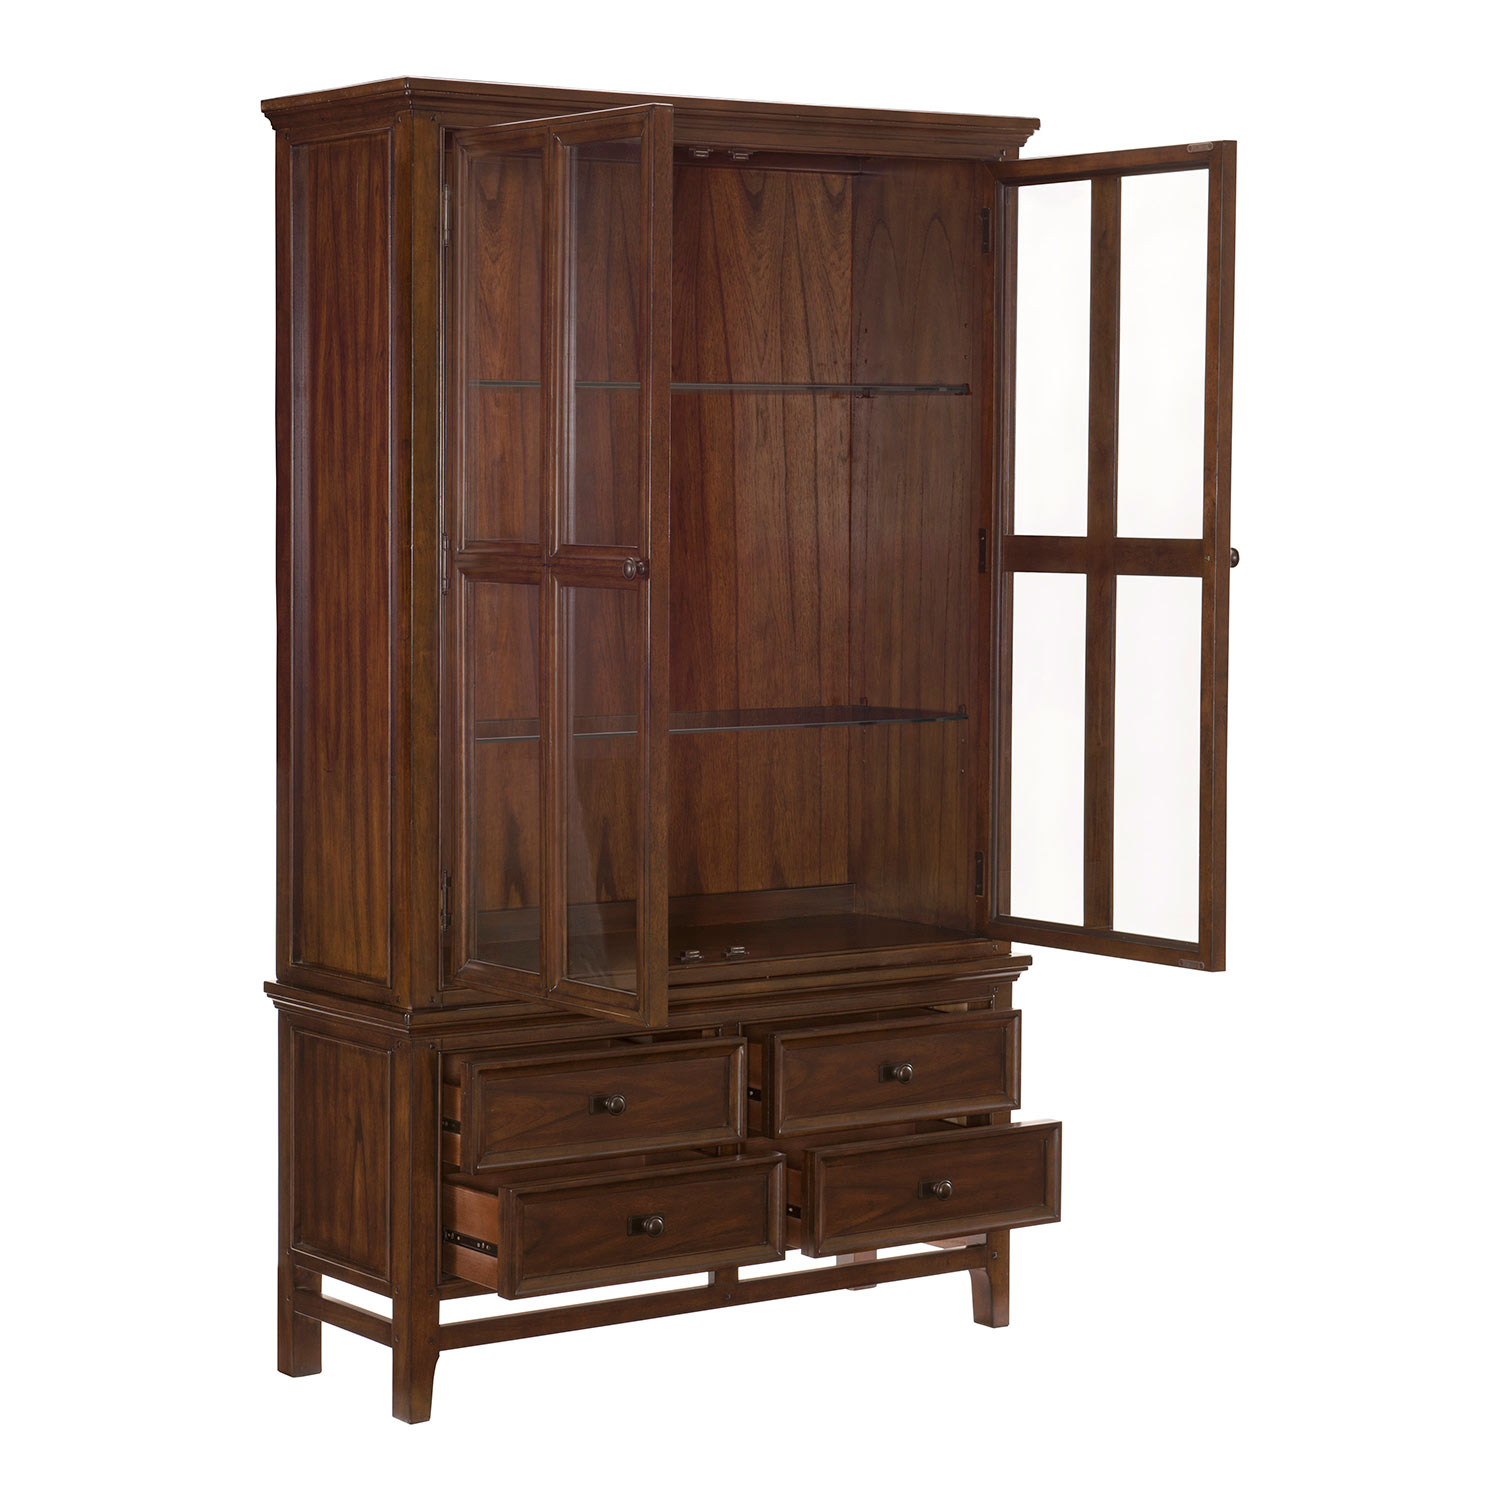 Homelegance Frazier China Cabinet - Brown Cherry